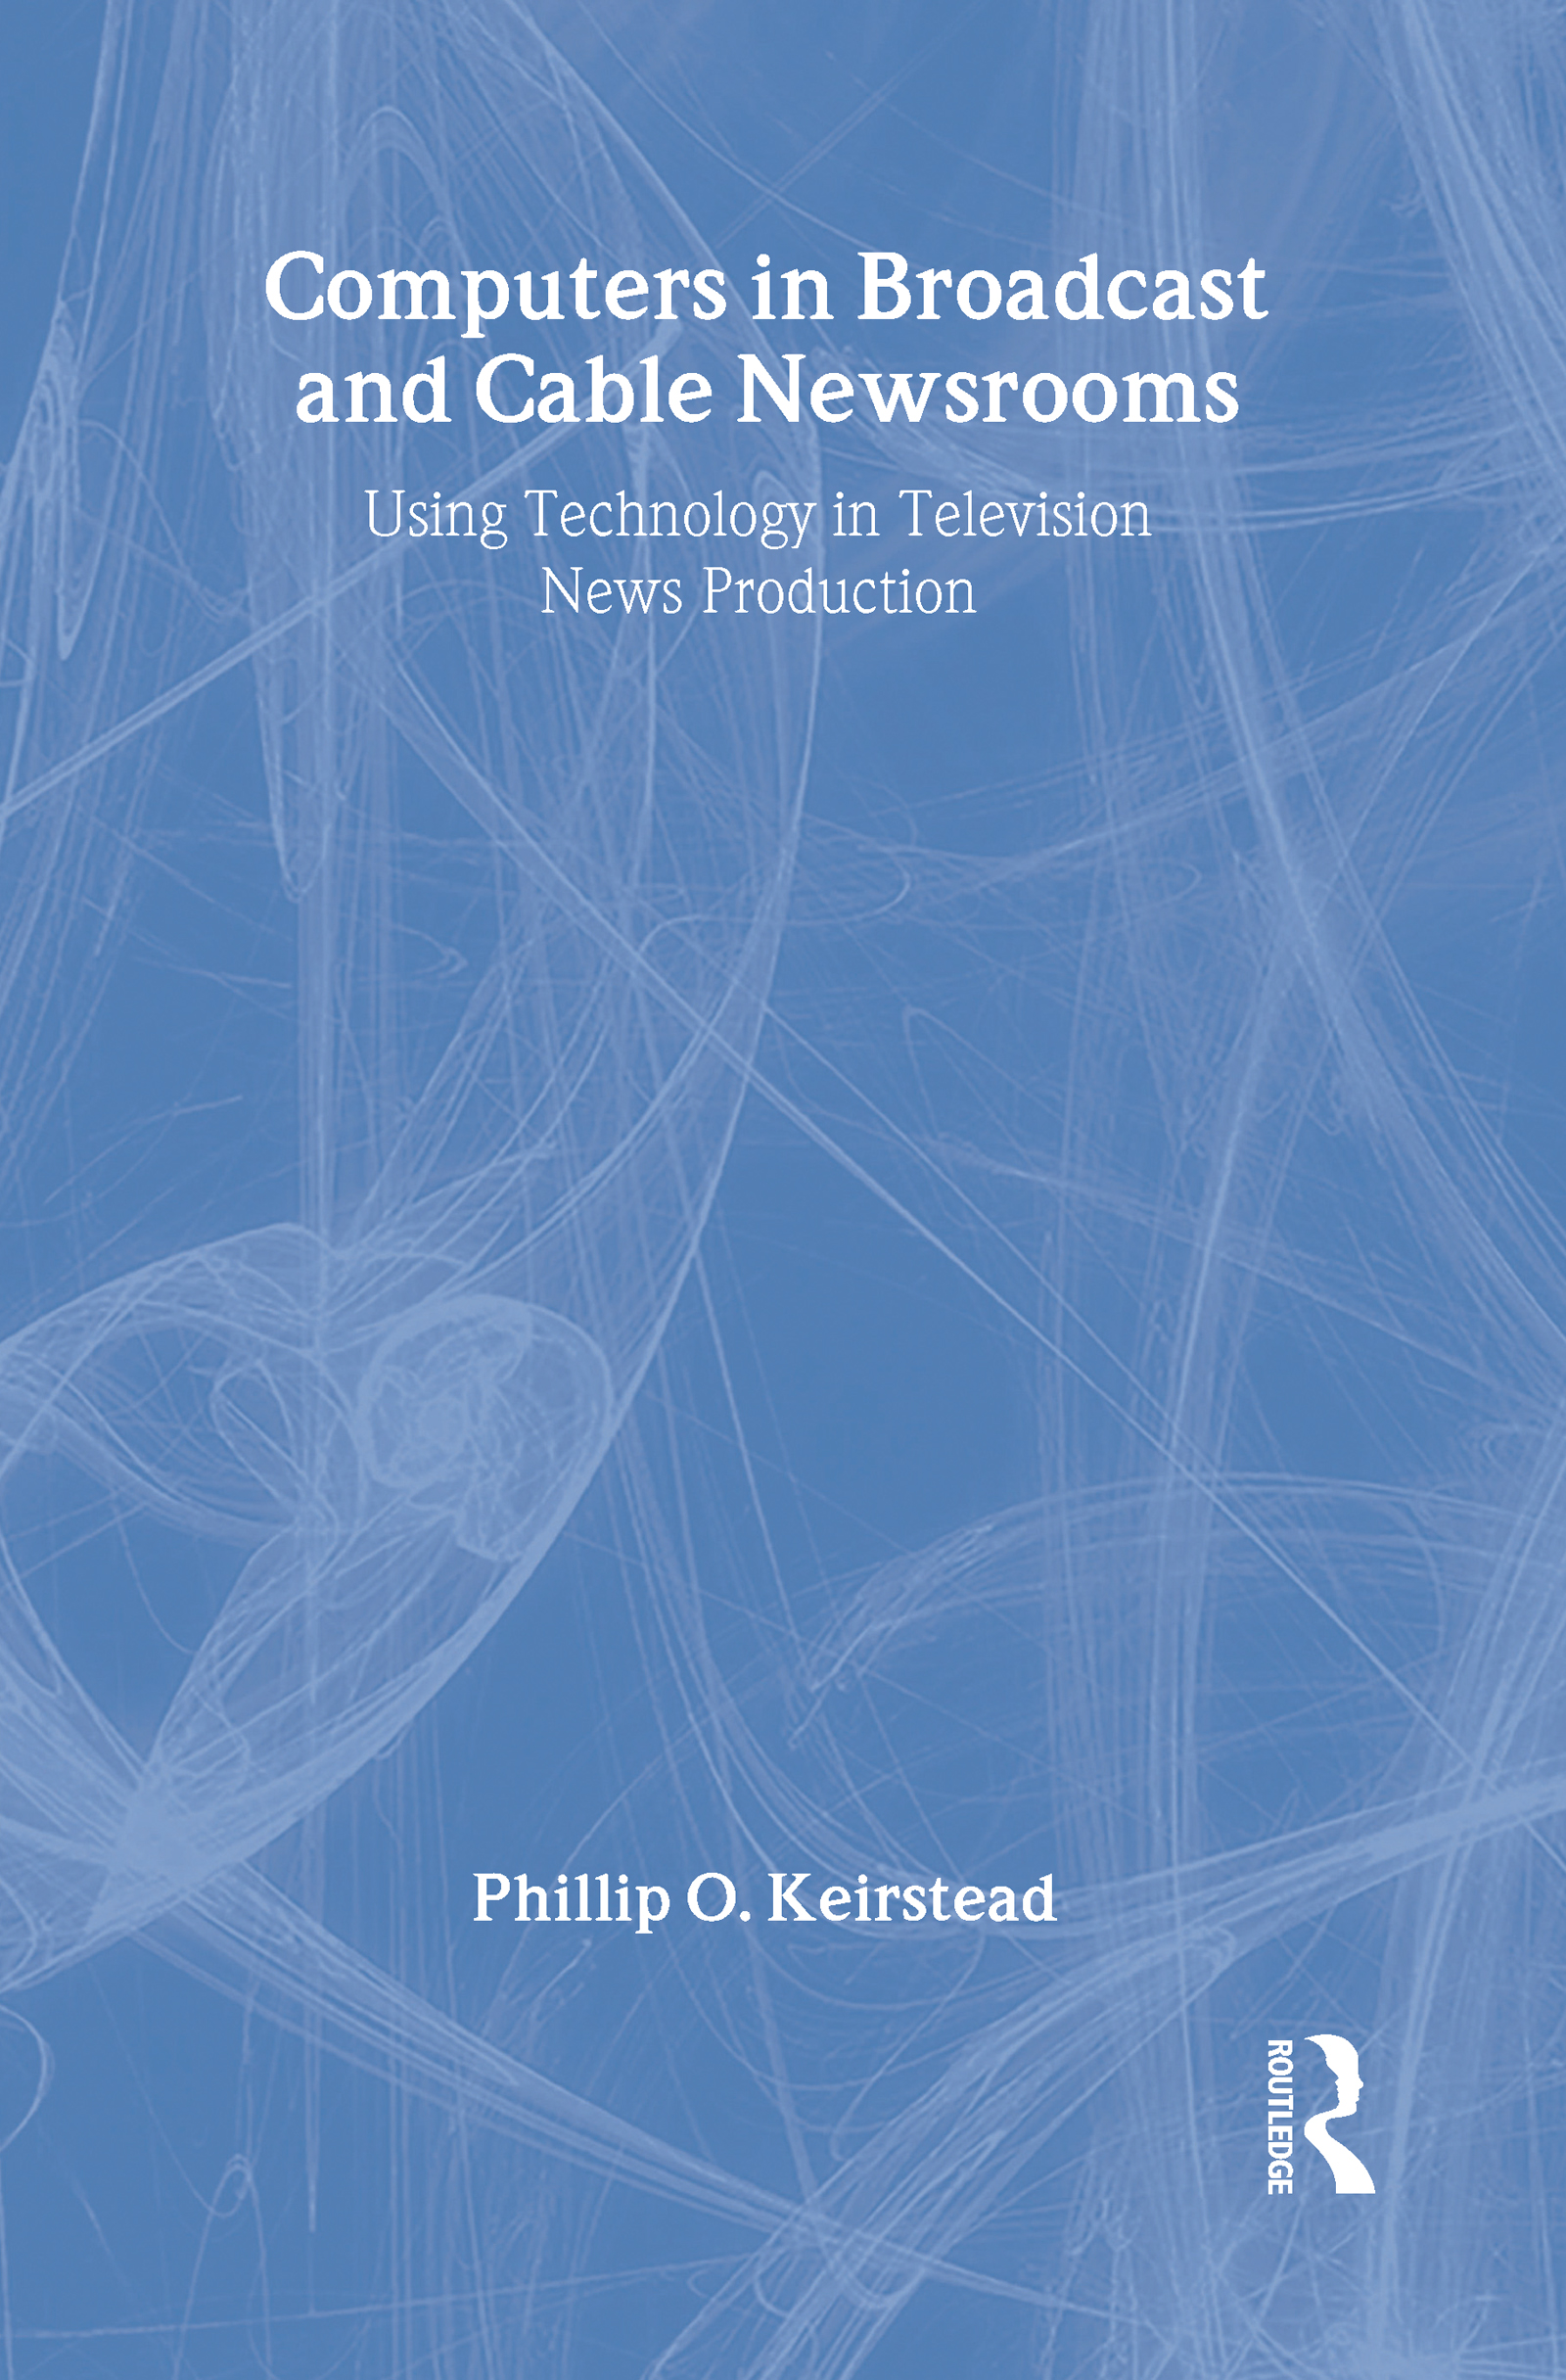 Download Ebook Computers in Broadcast and Cable Newsrooms by Phillip O. Keirstead Pdf